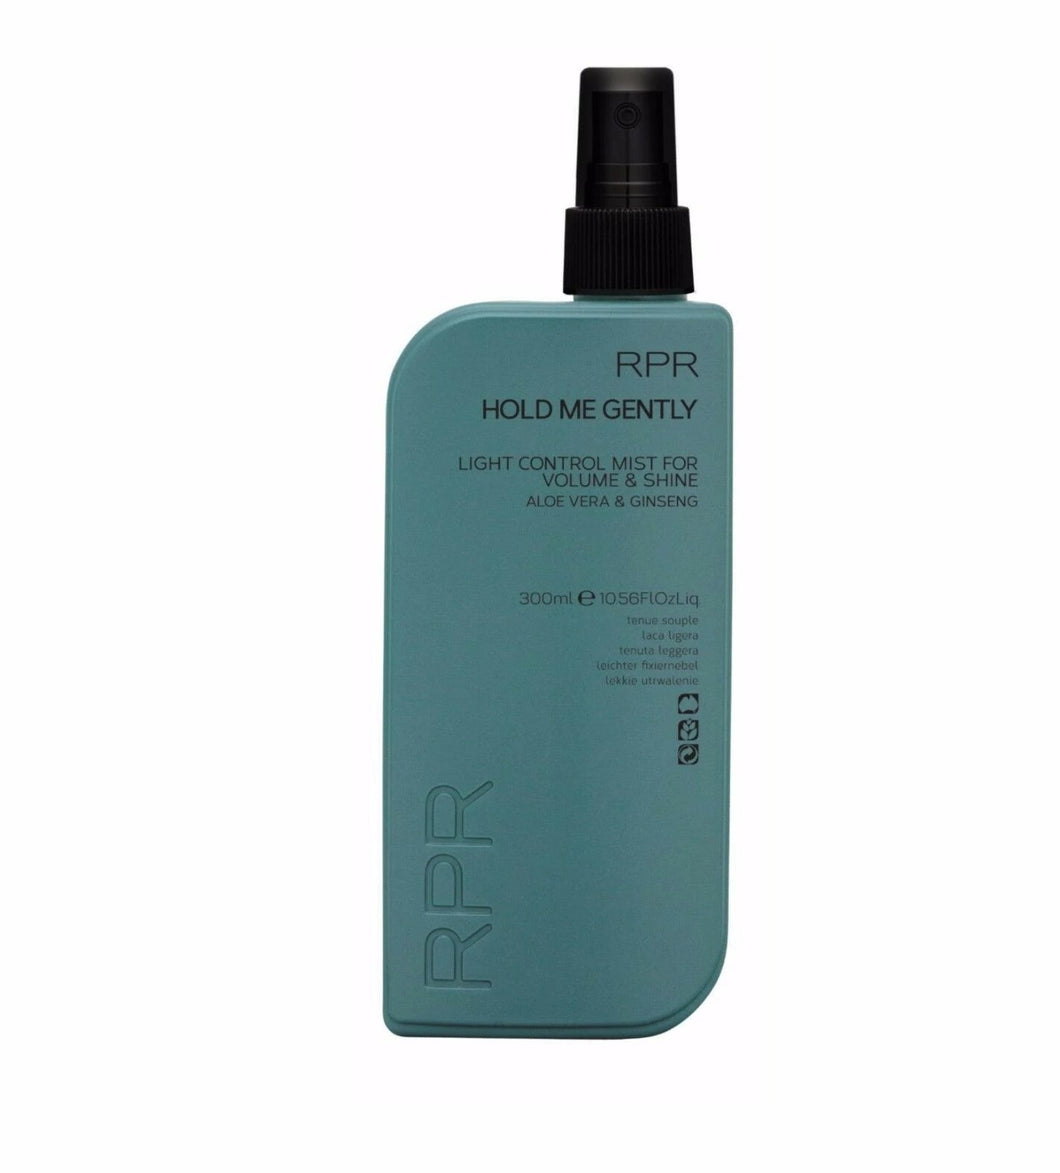 iaahhaircare,RPR Hold Me Gently 1 x 300ml,Styling Products,Styling RPR